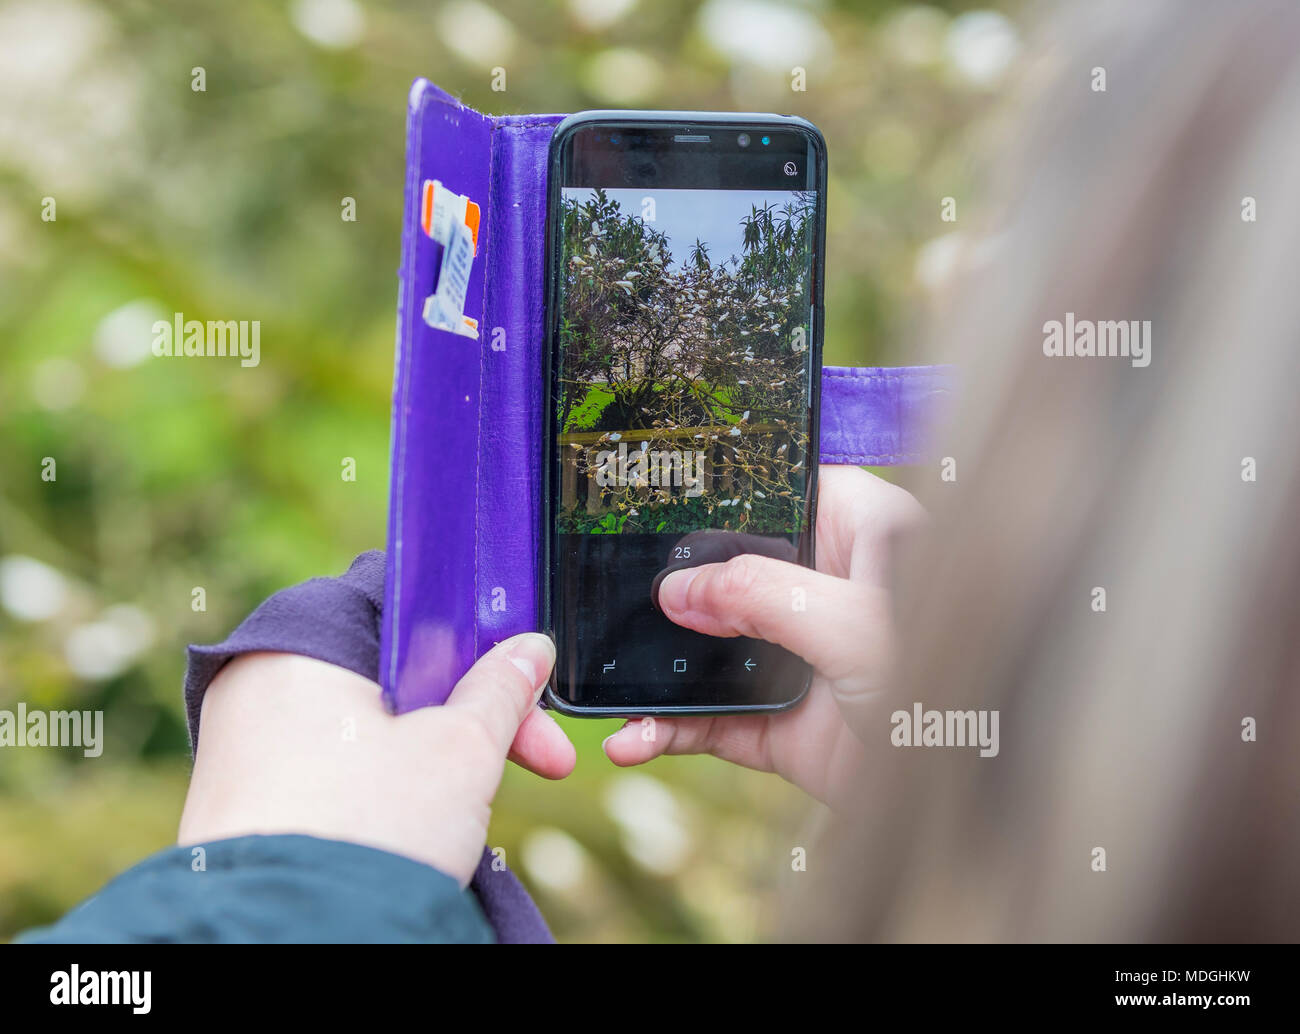 Person taking photographs of flowers and plants on a smartphone. Taking photos with a mobile phone. - Stock Image